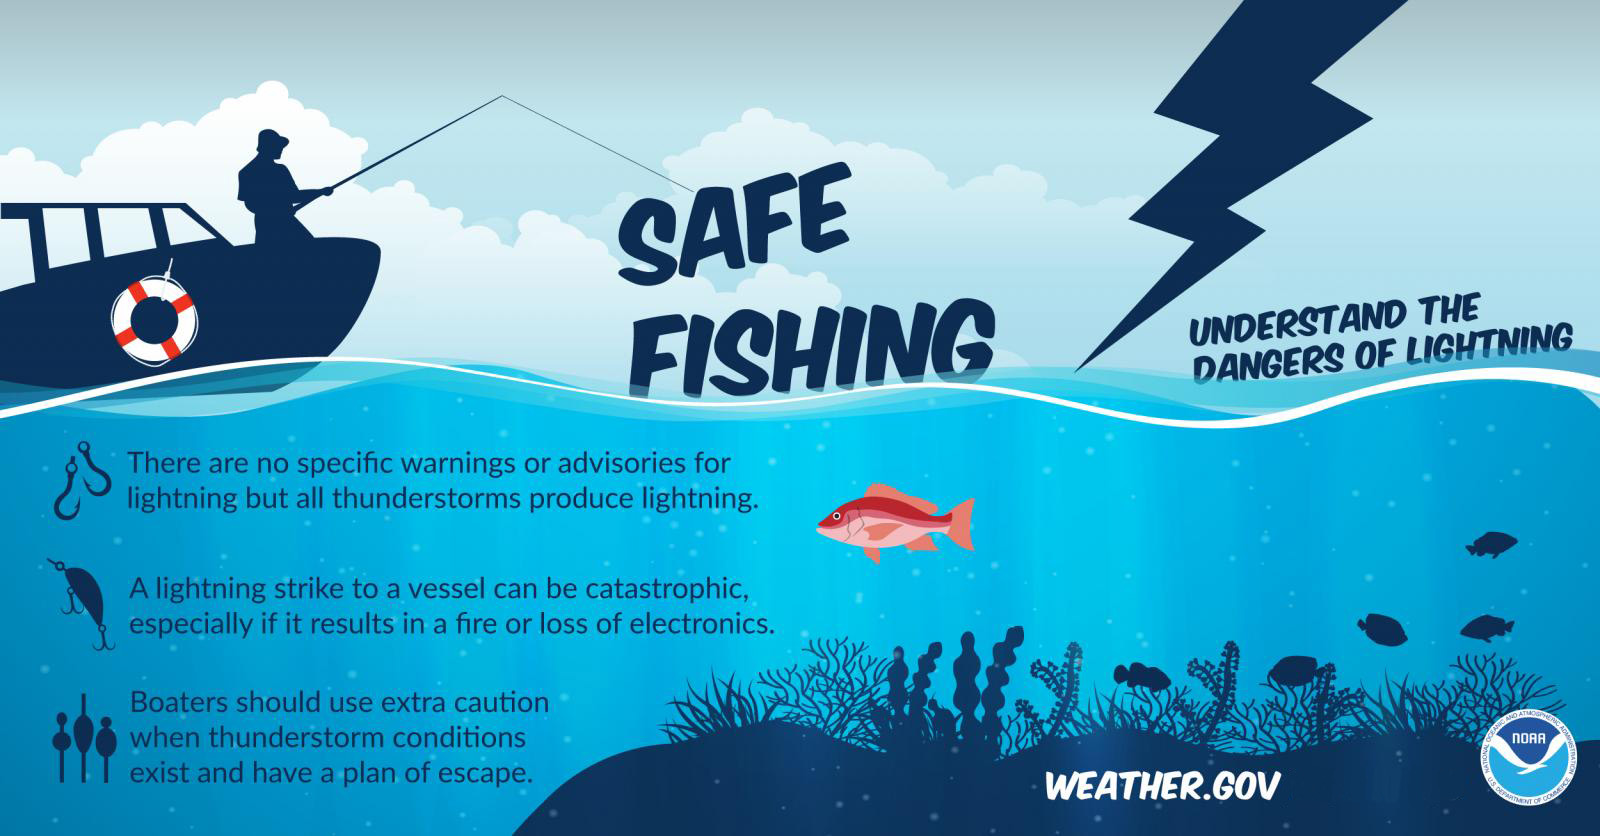 fishing lightning safety.jpg